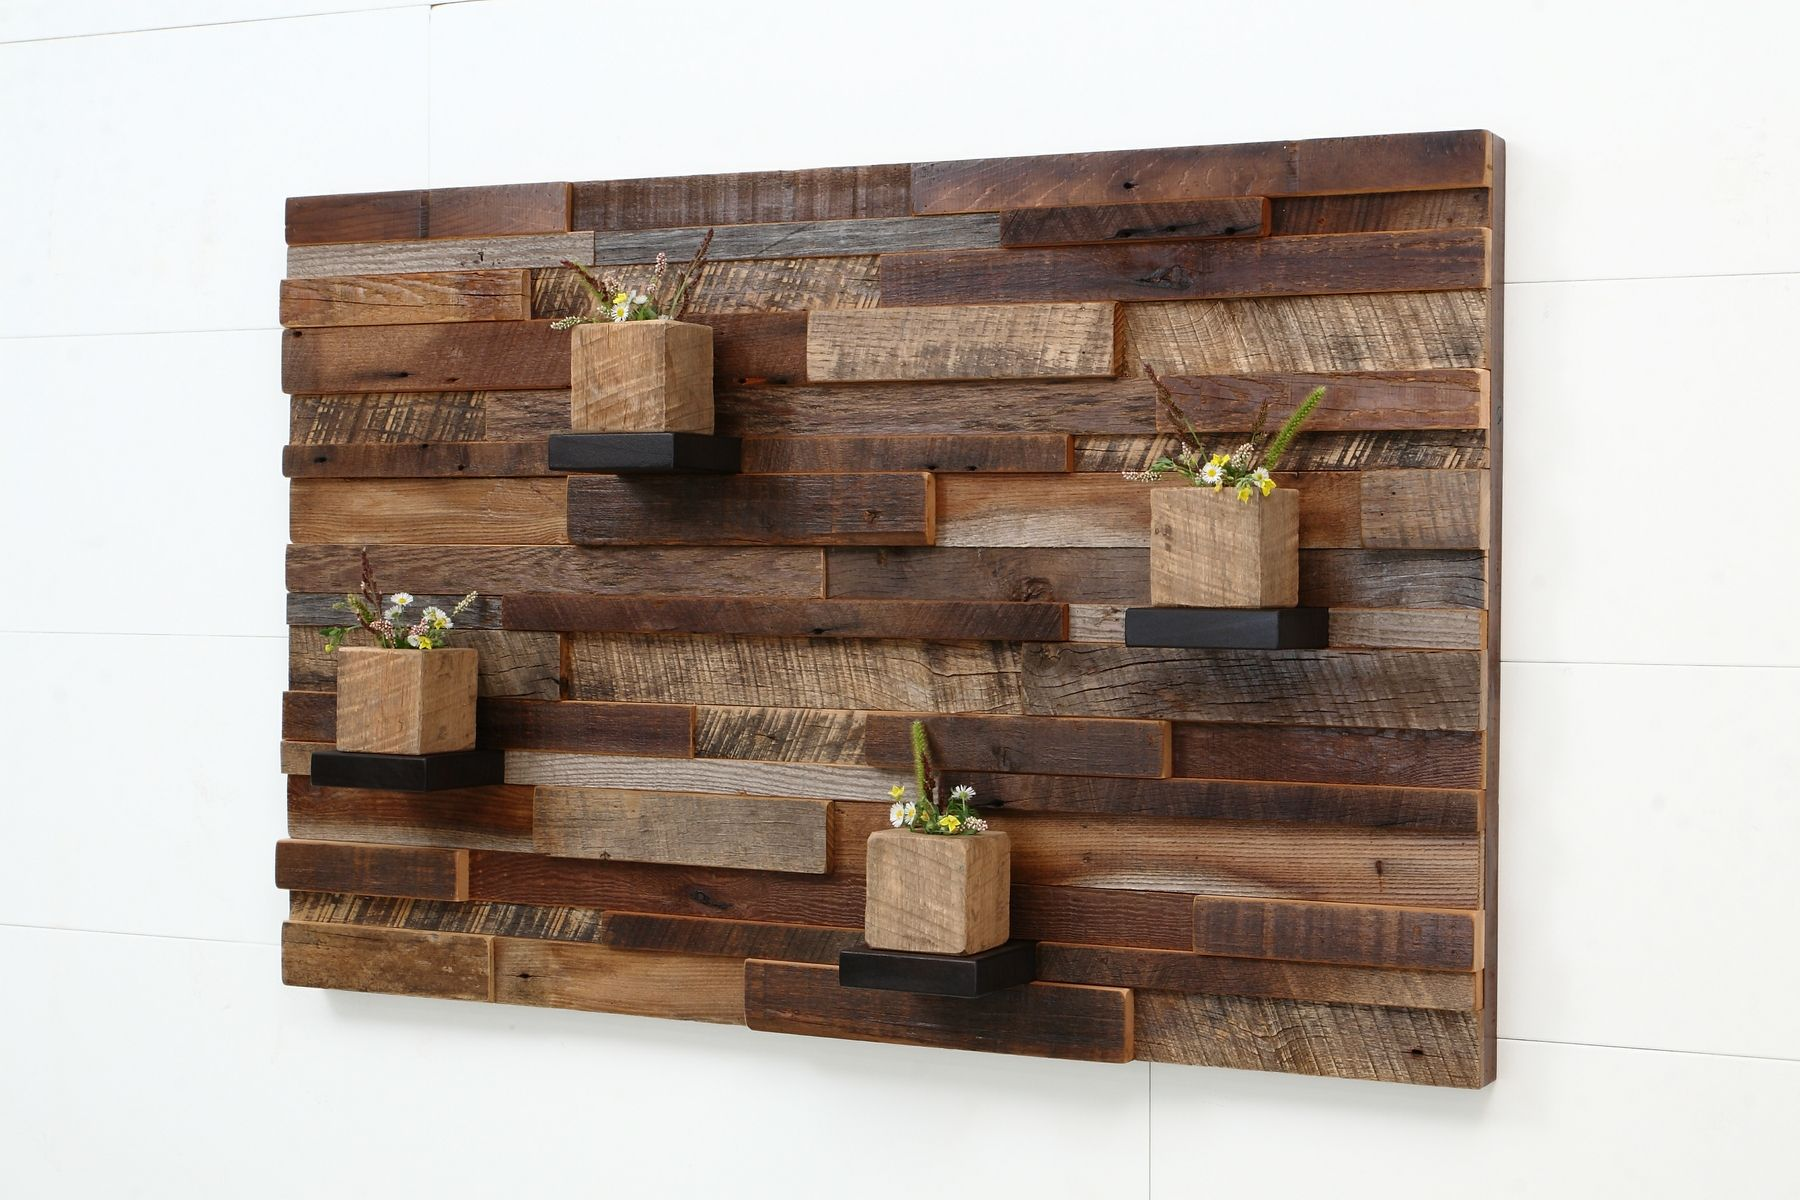 Personalized Wood Wall Art hand crafted reclaimed wood wall art made of old barnwood.